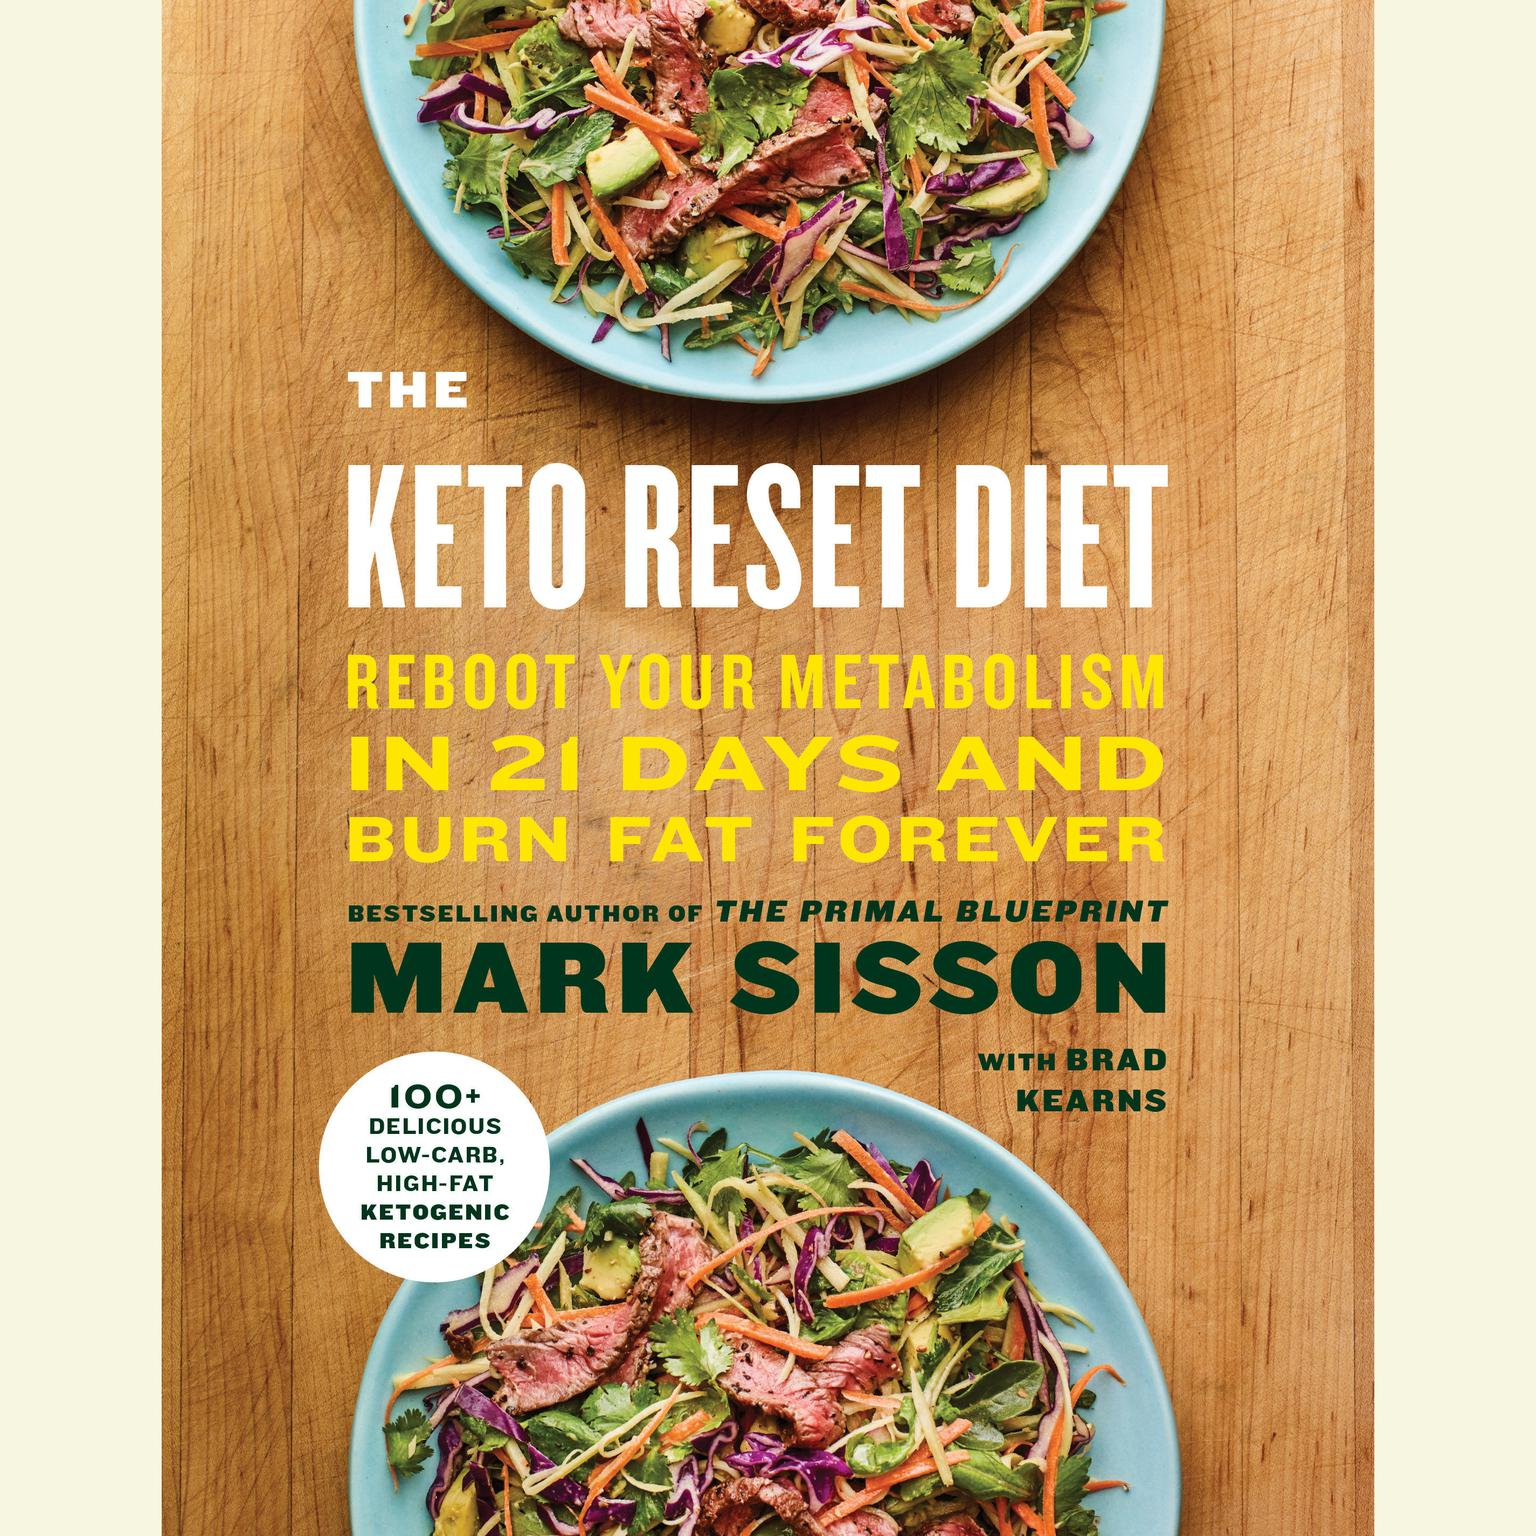 The Keto Reset Diet: Reboot Your Metabolism in 21 Days and Burn Fat Forever Audiobook, by Mark Sisson